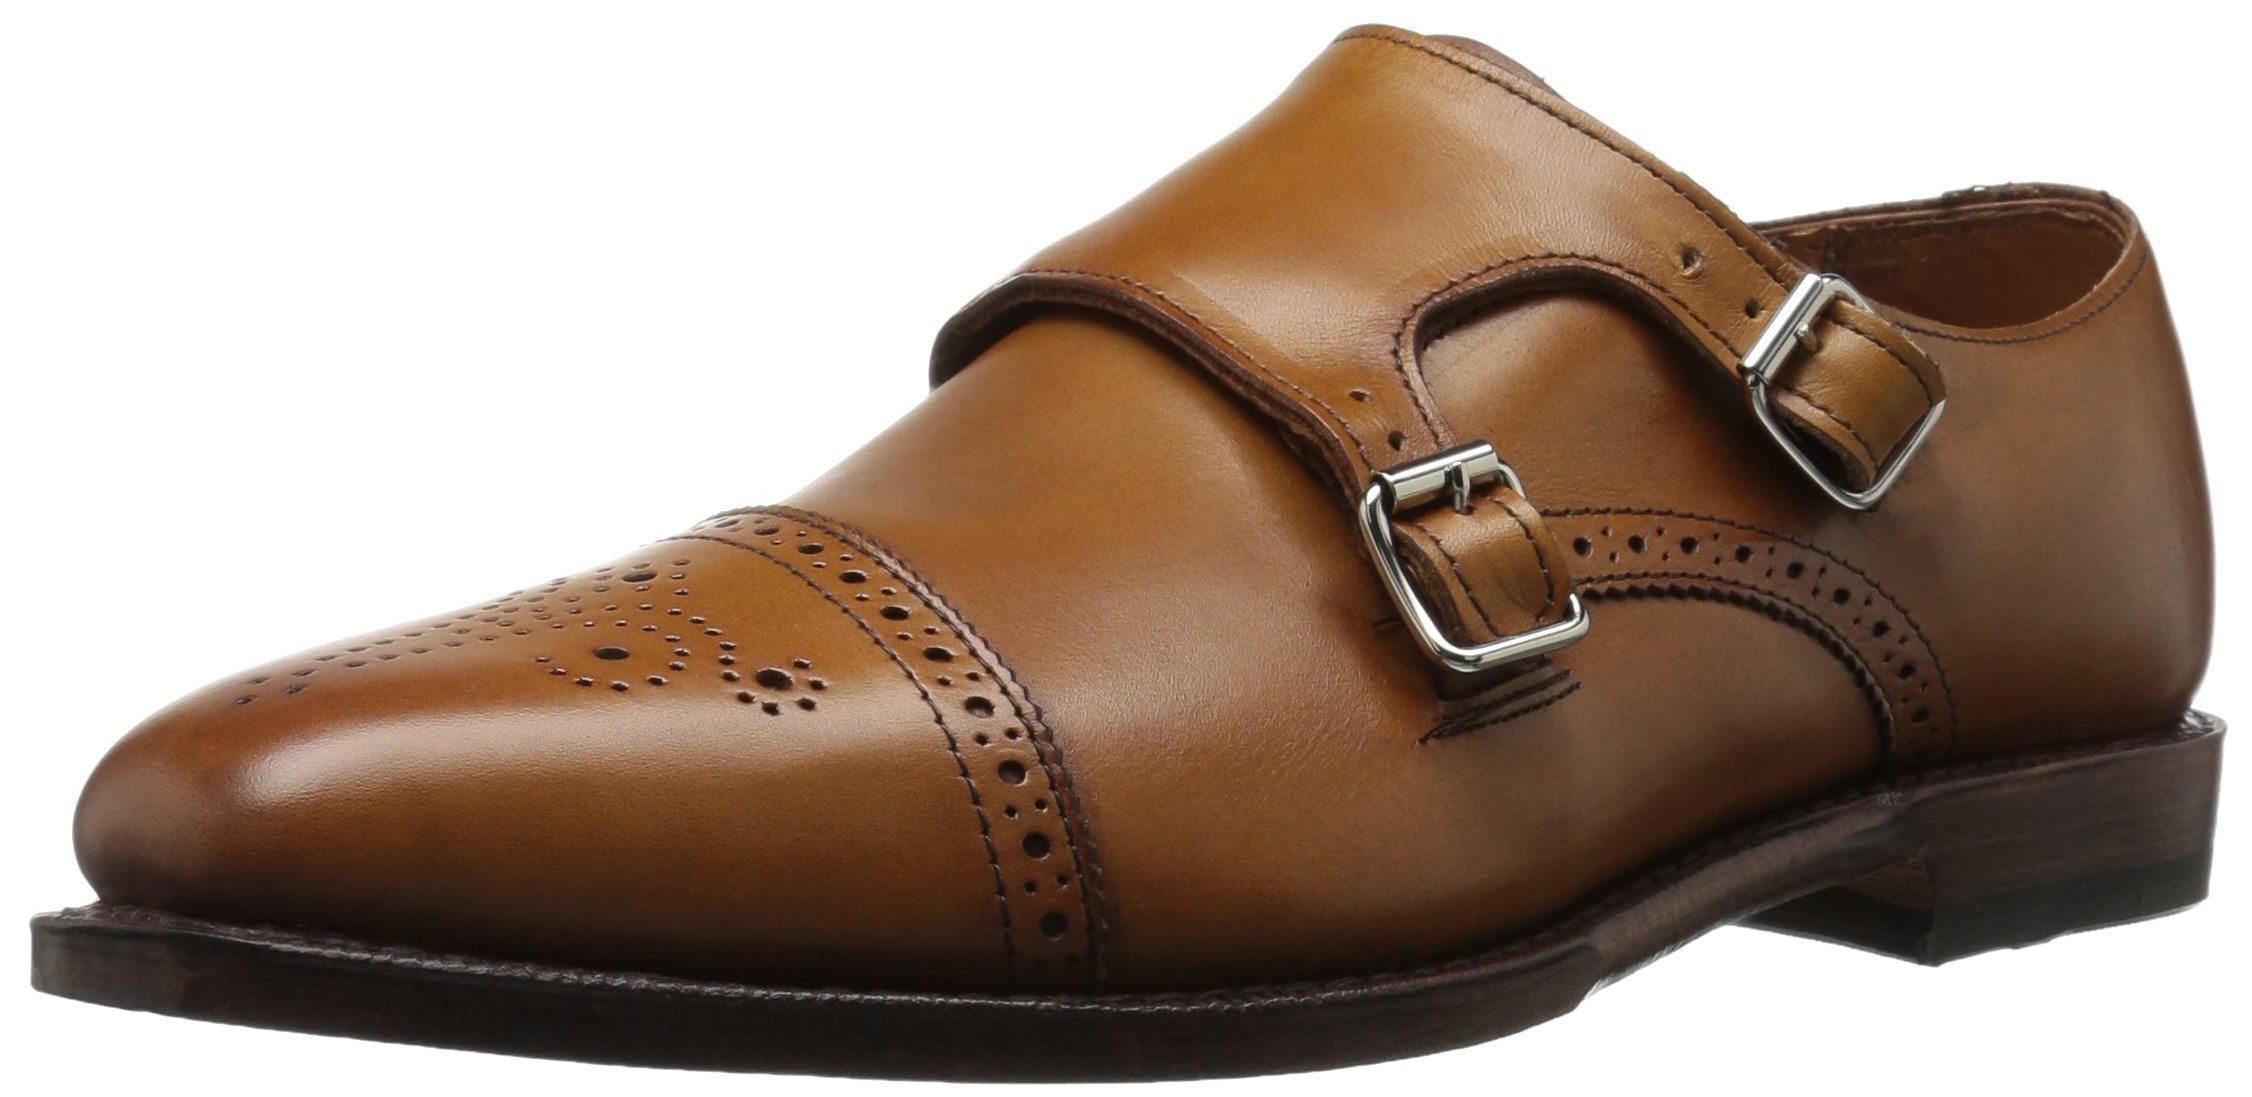 Allen Edmonds Men's ST. John's Oxford, Walnut, 8 E US